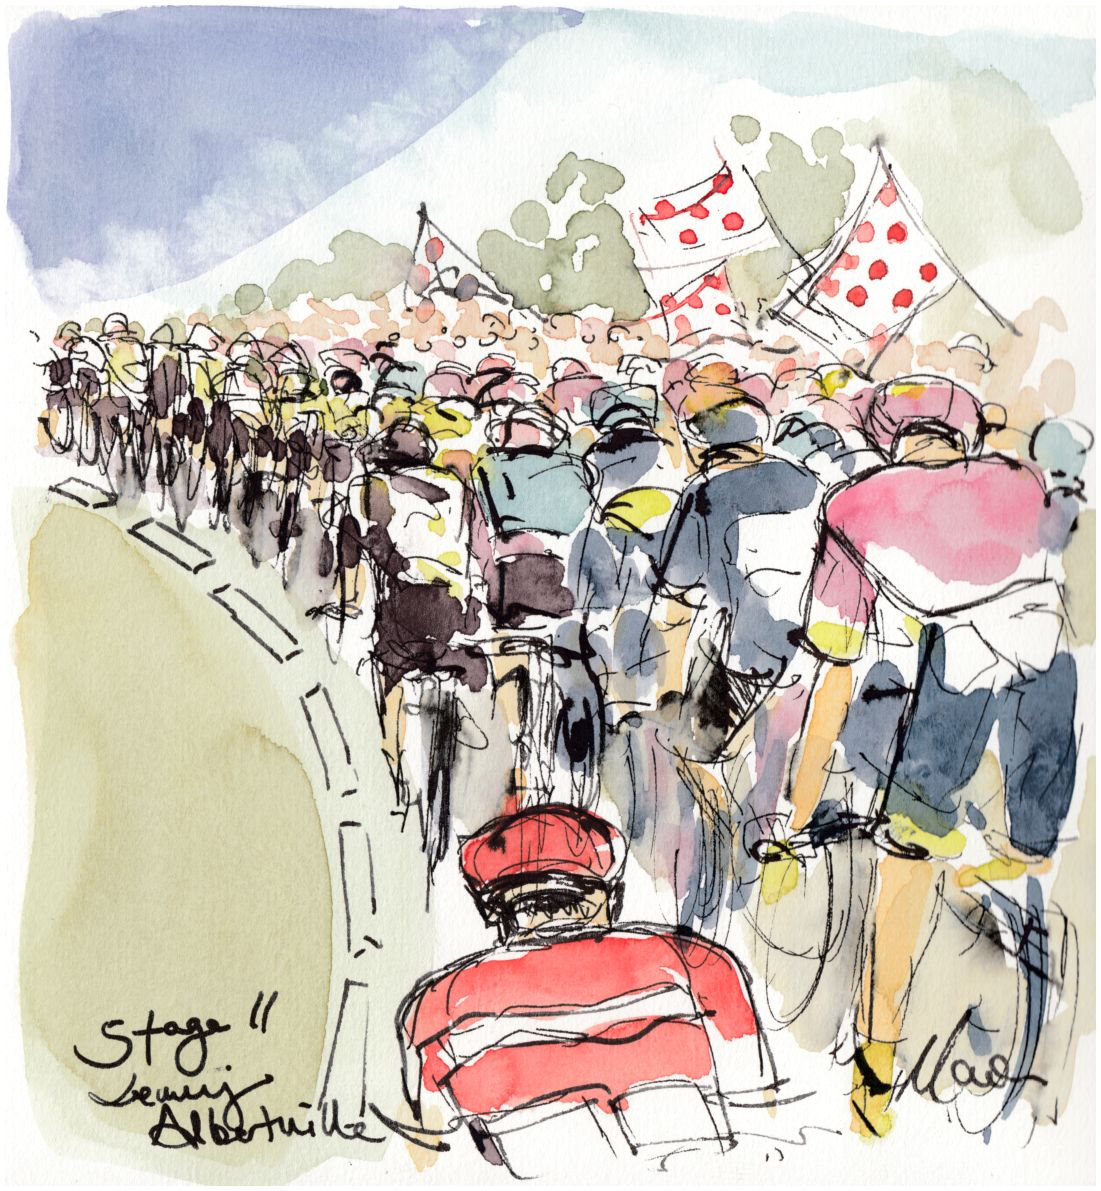 Cycling art, Tour de France, Stage 11, Leaving Albertville